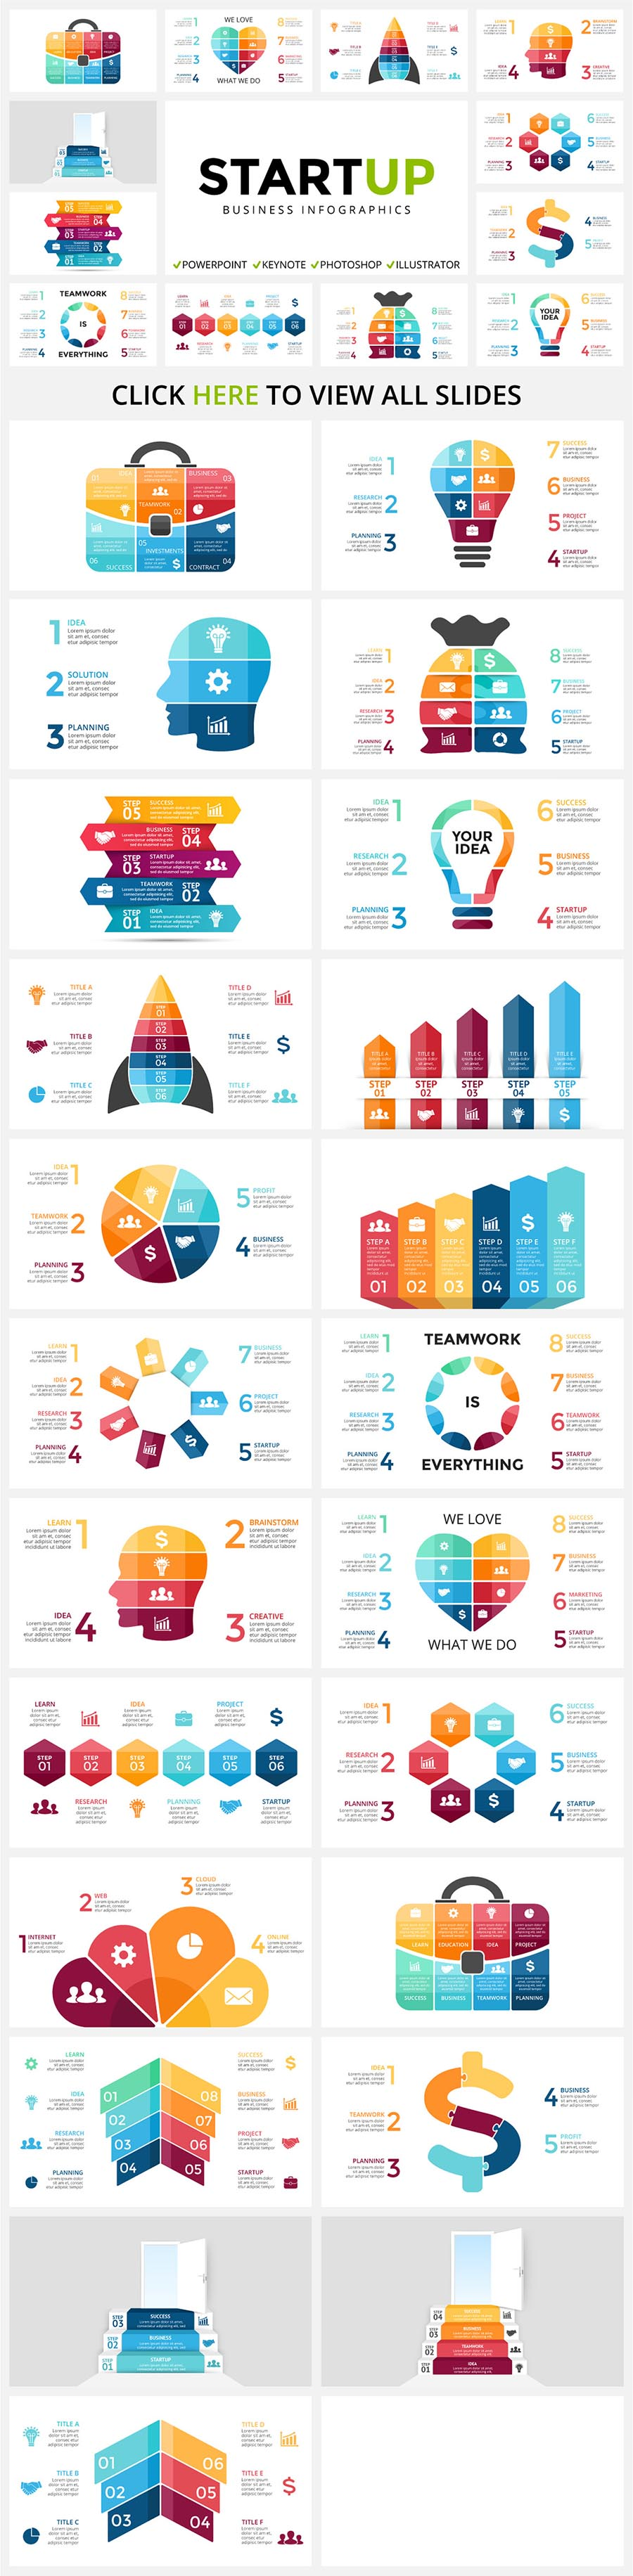 Cool Infographics in 2020. Best Infographics Bundle: 1500 items - $29 - 06 STARTUP